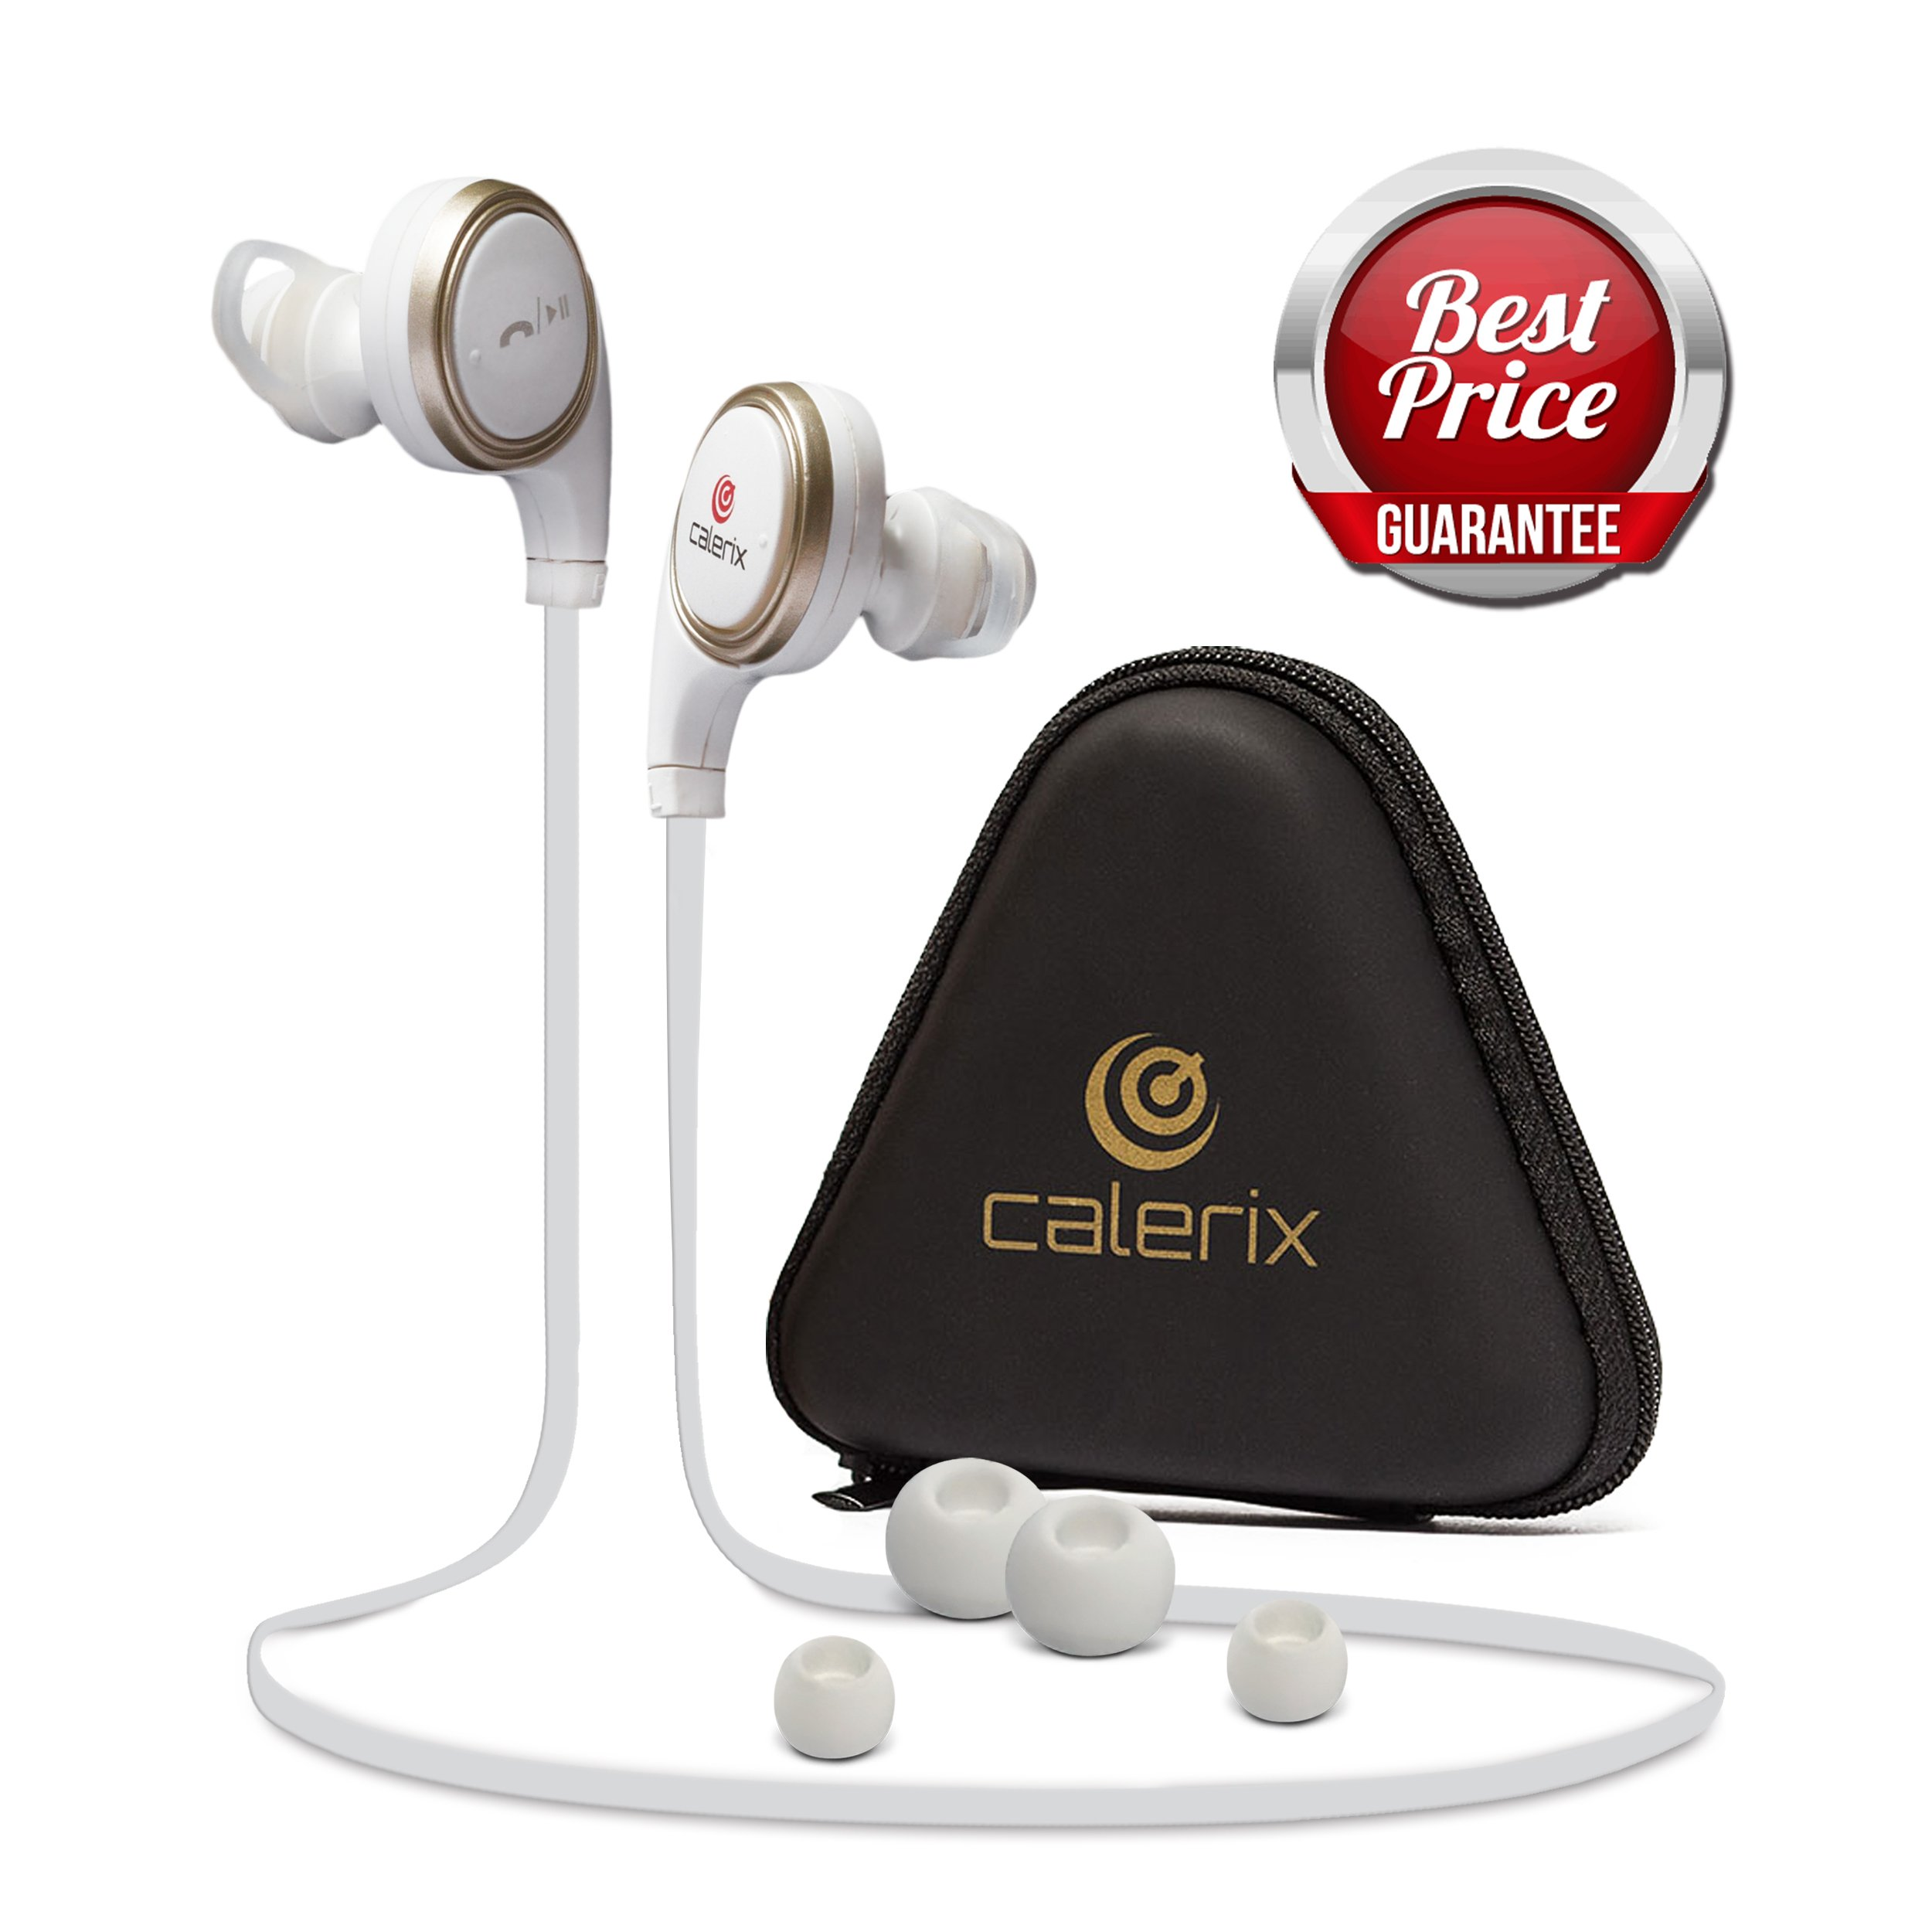 Bluetooth Headphones 4.1 Wireless Calerix, with Sweat Proof, Noise Cancelling Technology – Lightweight Sport In-Ear Earbuds with Built-In Microphone – Connect to iOS, Android (White/Golden)